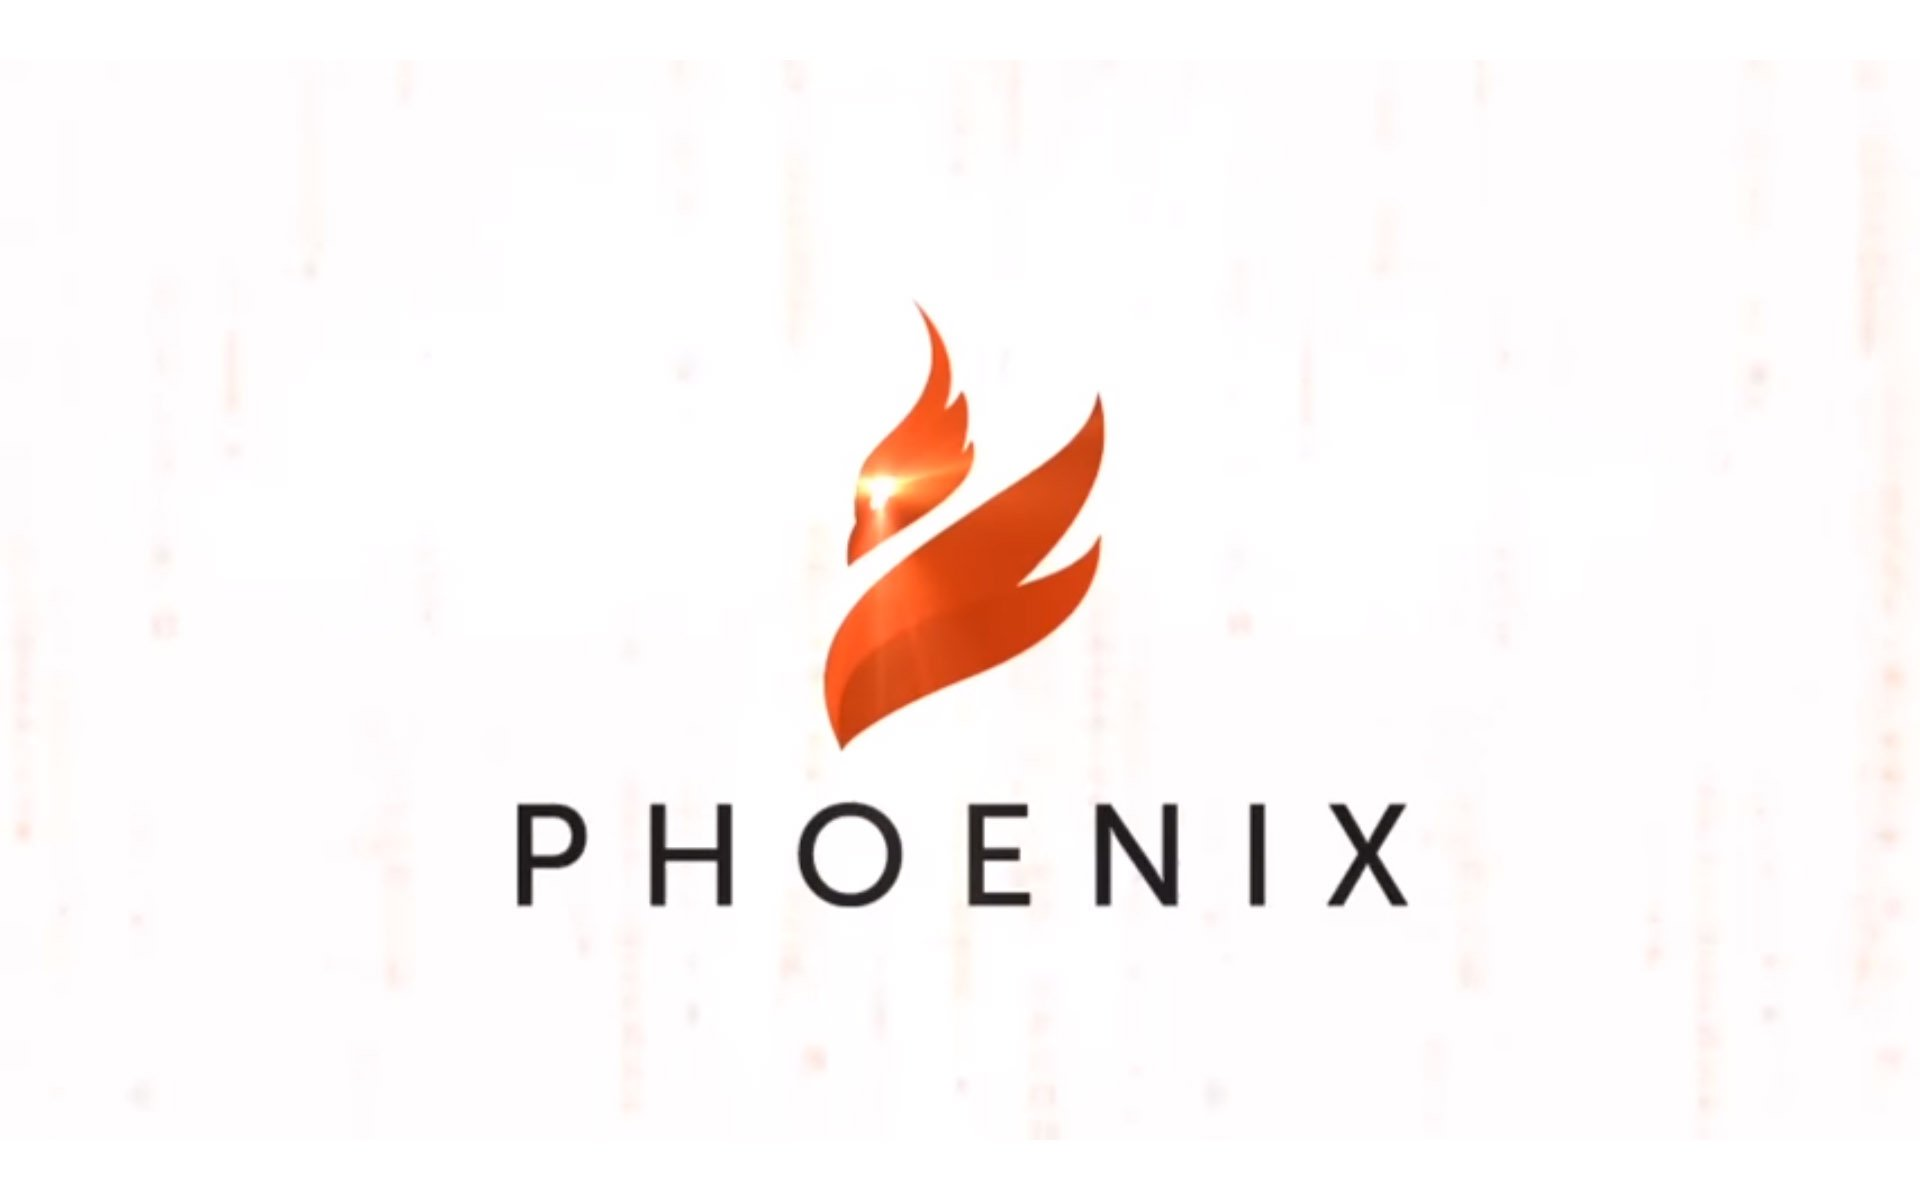 An Exclusive Interview with the Team Behind the Innovative and Profitable Phoenix Investment Platform